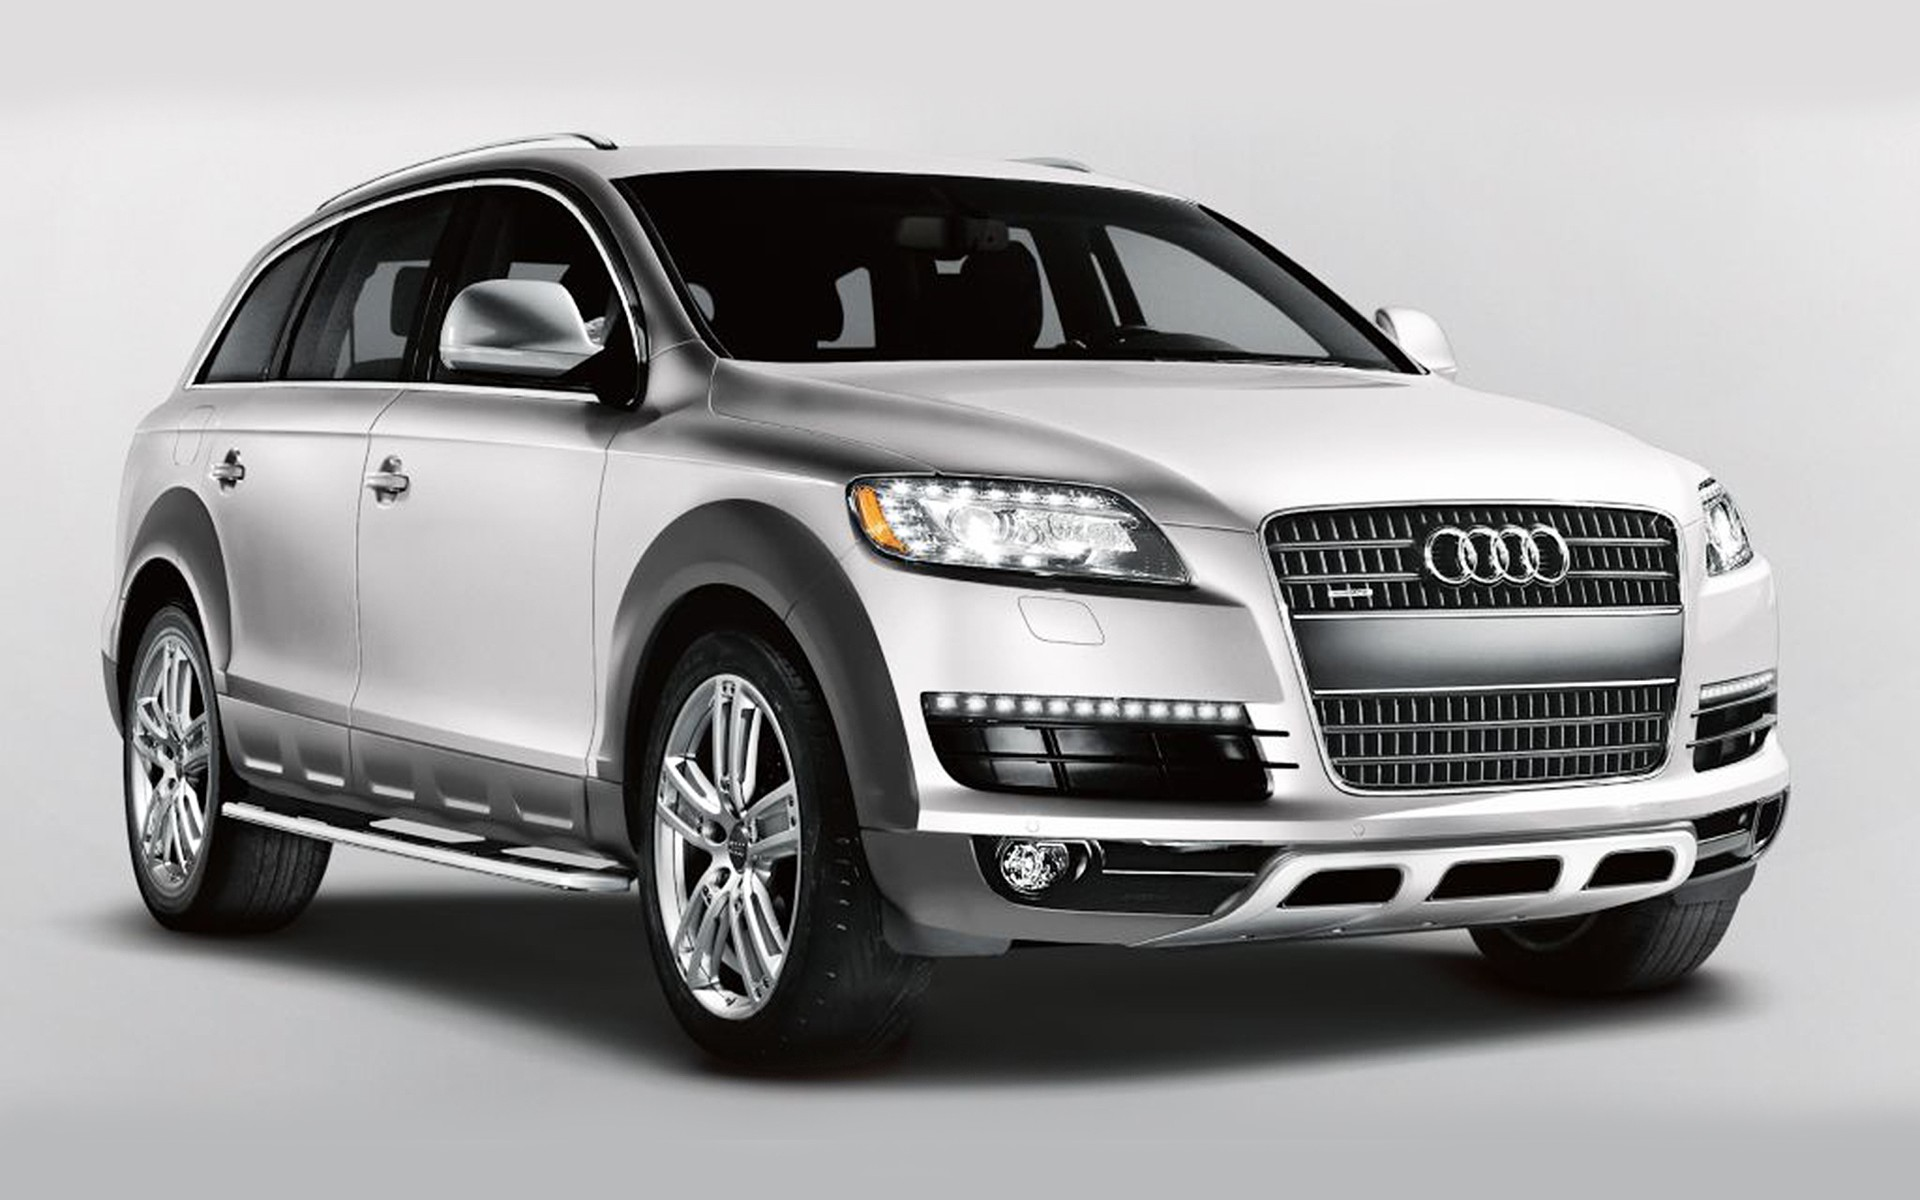 2015 audi q7 suv reviews photos video and price q7 suv hiclasscar car photos catalog 2018. Black Bedroom Furniture Sets. Home Design Ideas